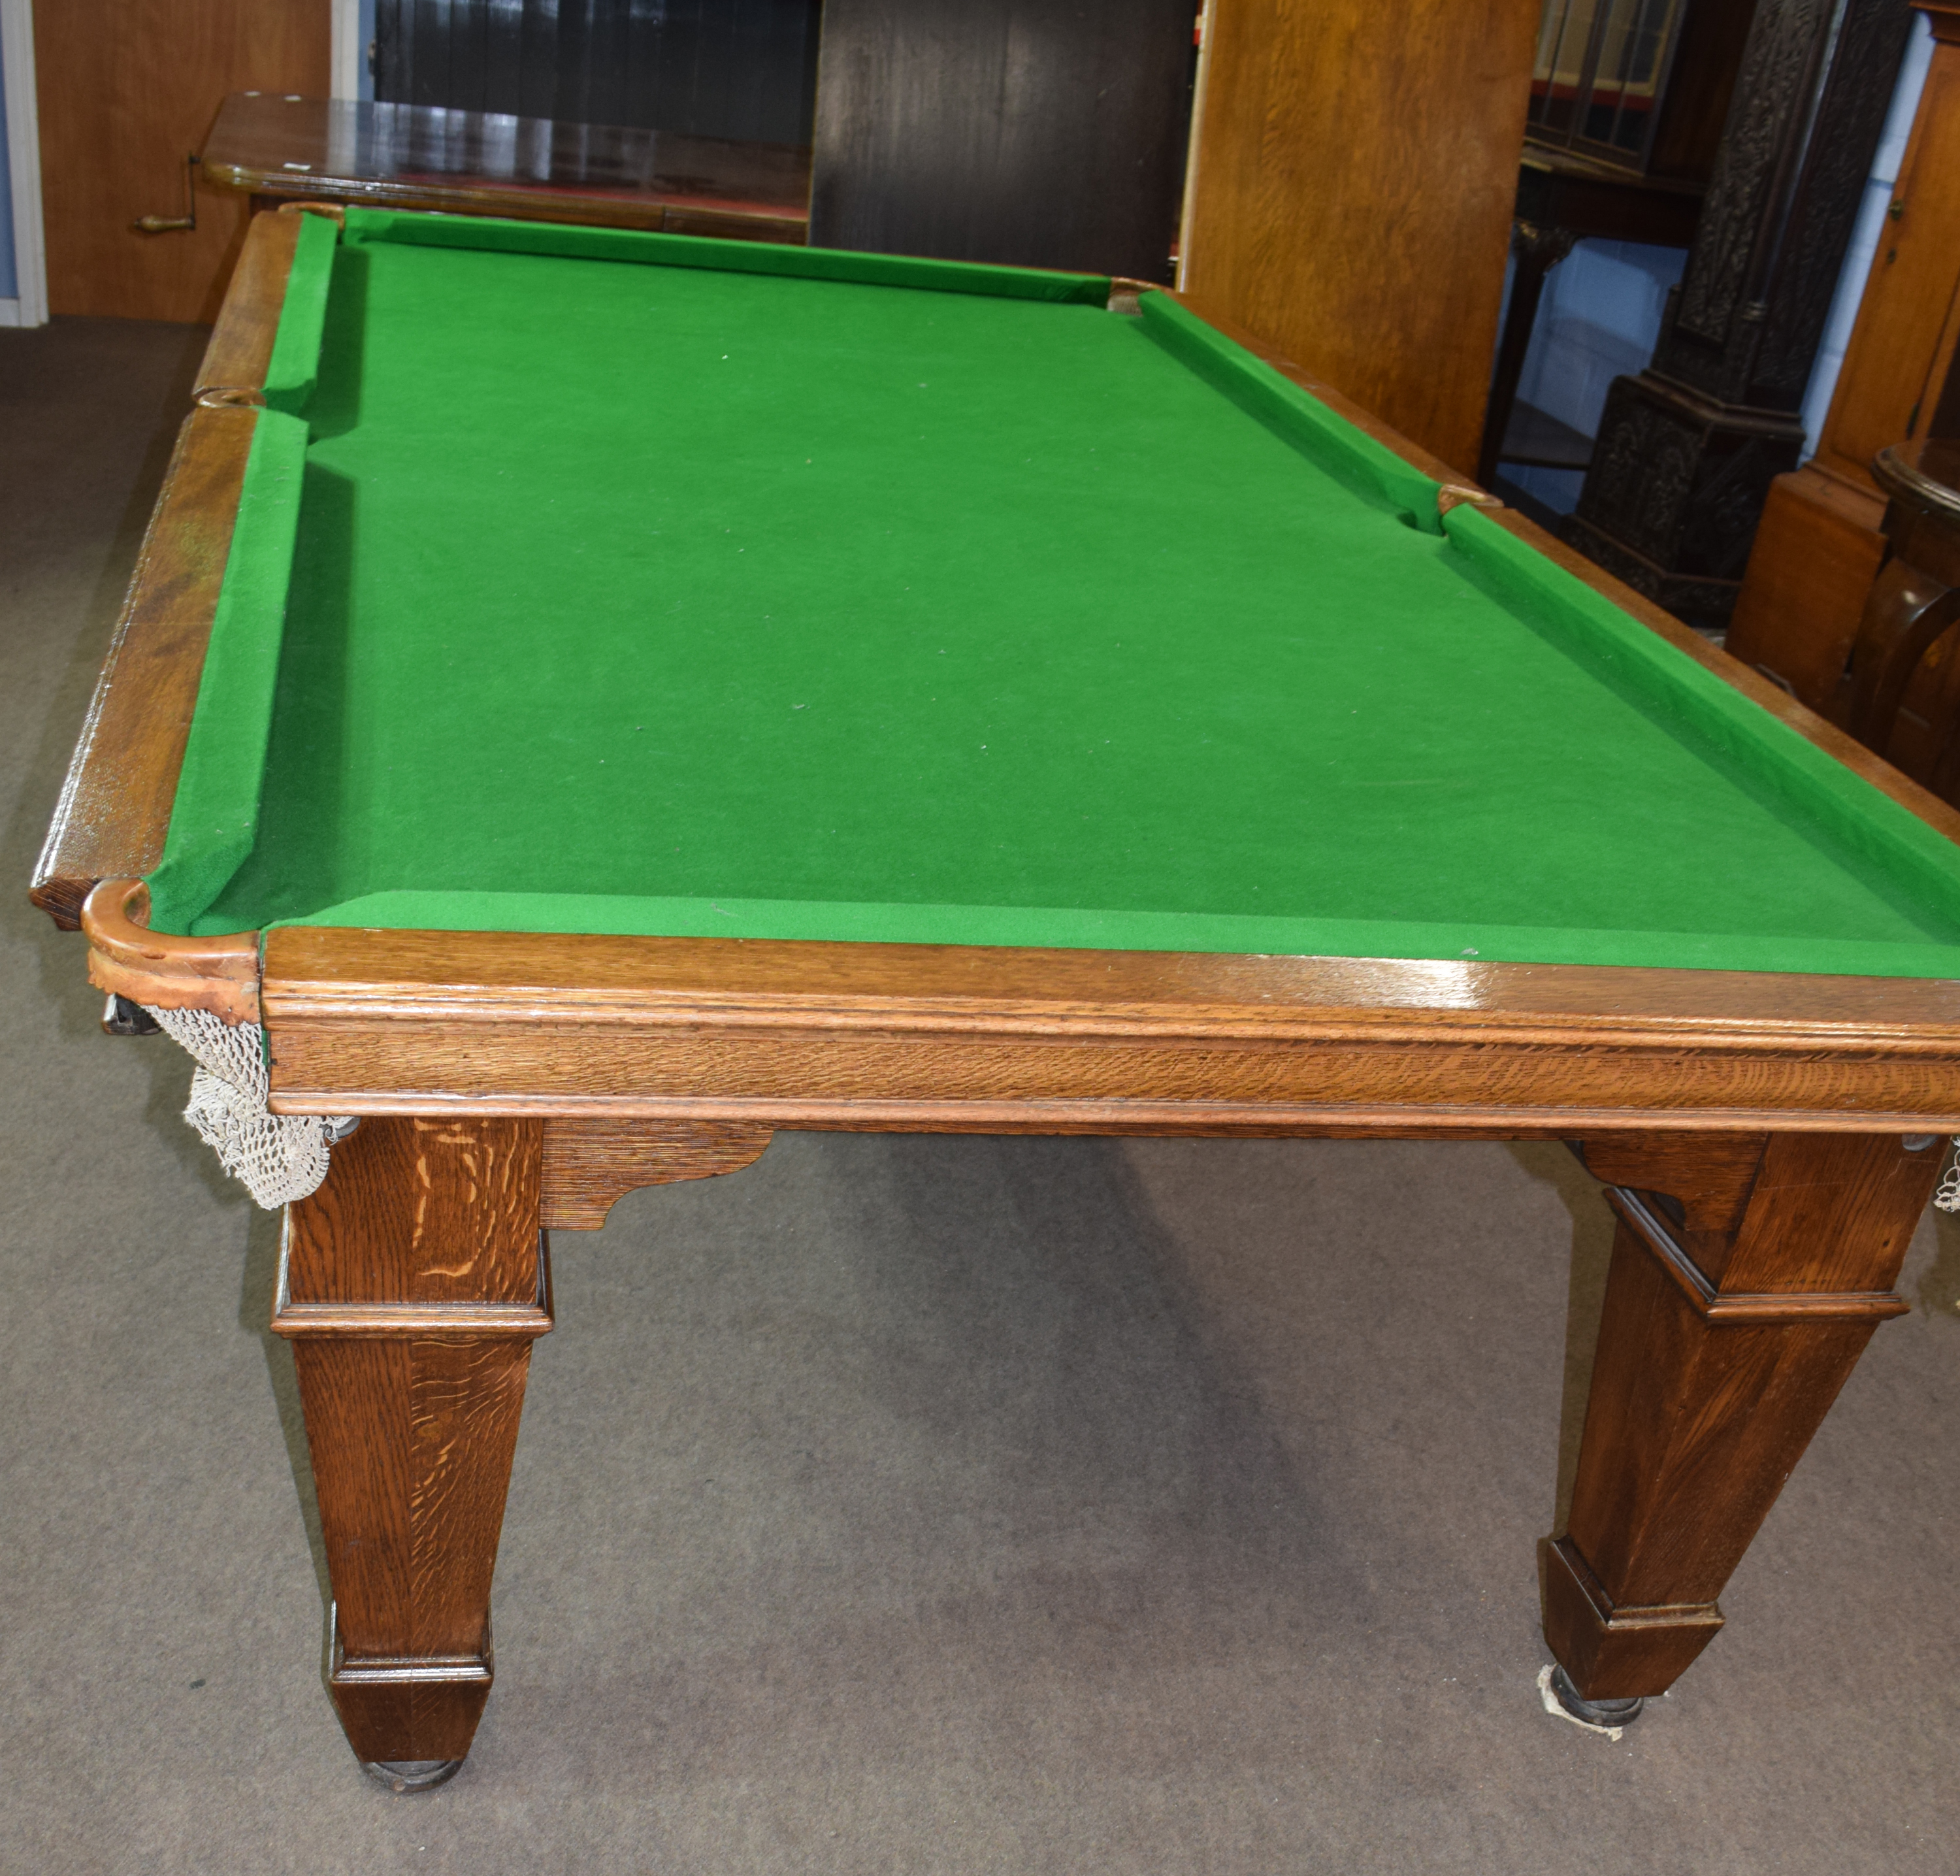 Oak frame and slate bed, quarter size snooker table with leaves adapting it to a dining table - Image 6 of 6